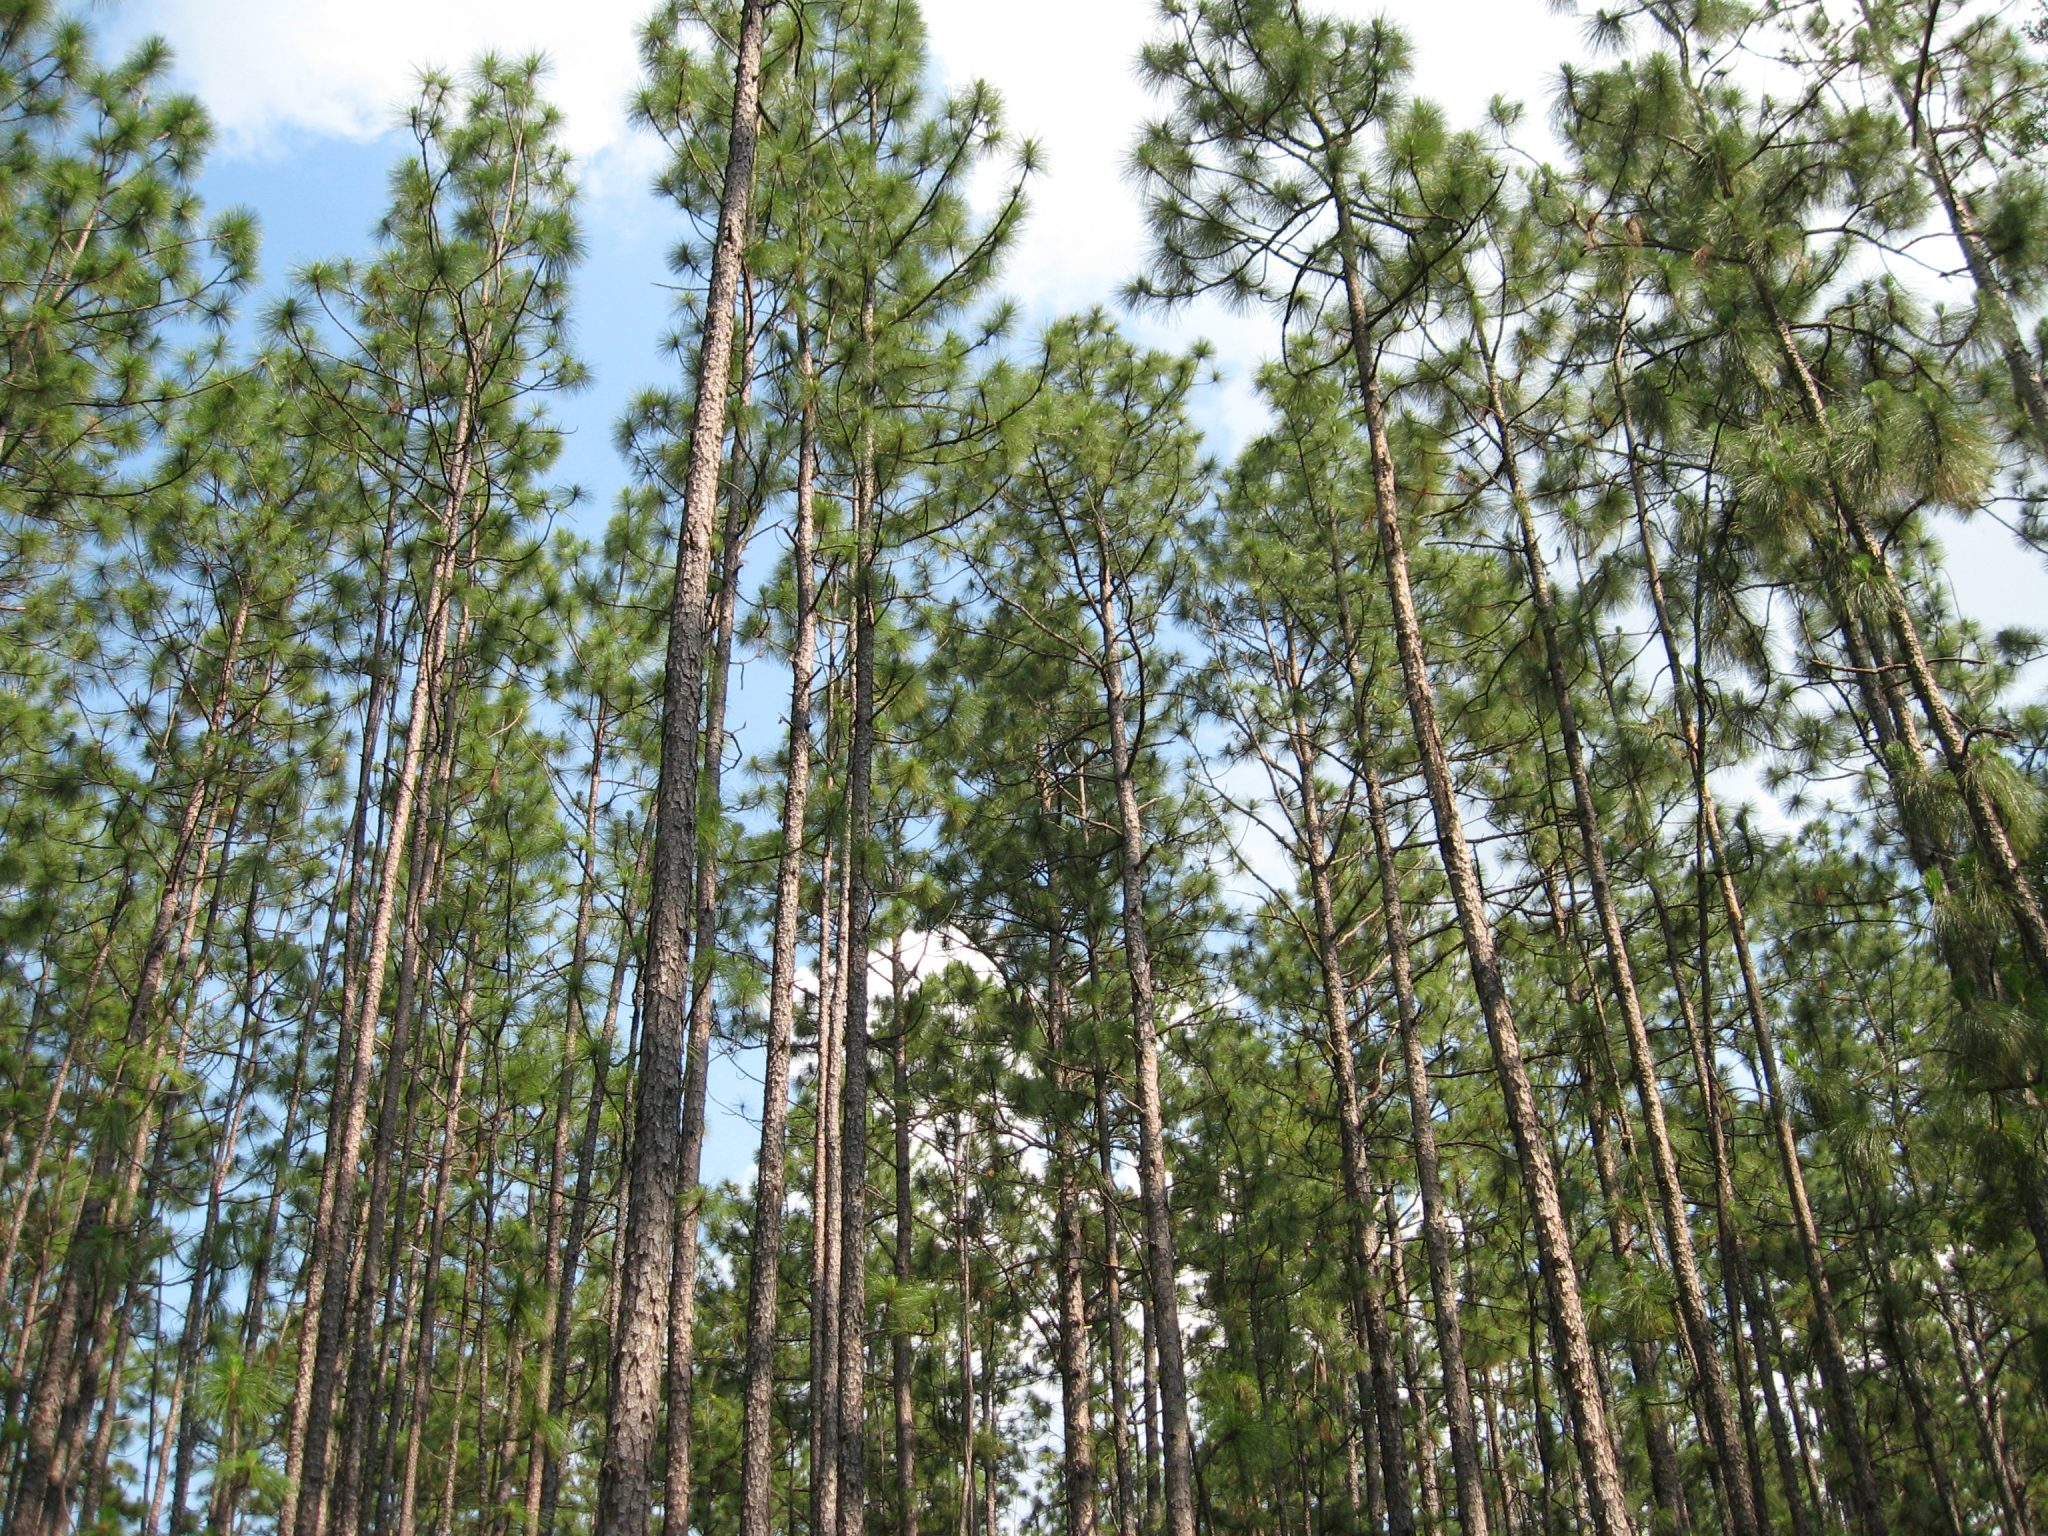 Figure 1. Landowners often overlook the option of uneven-aged management of longleaf pine because they think it is too complicated.